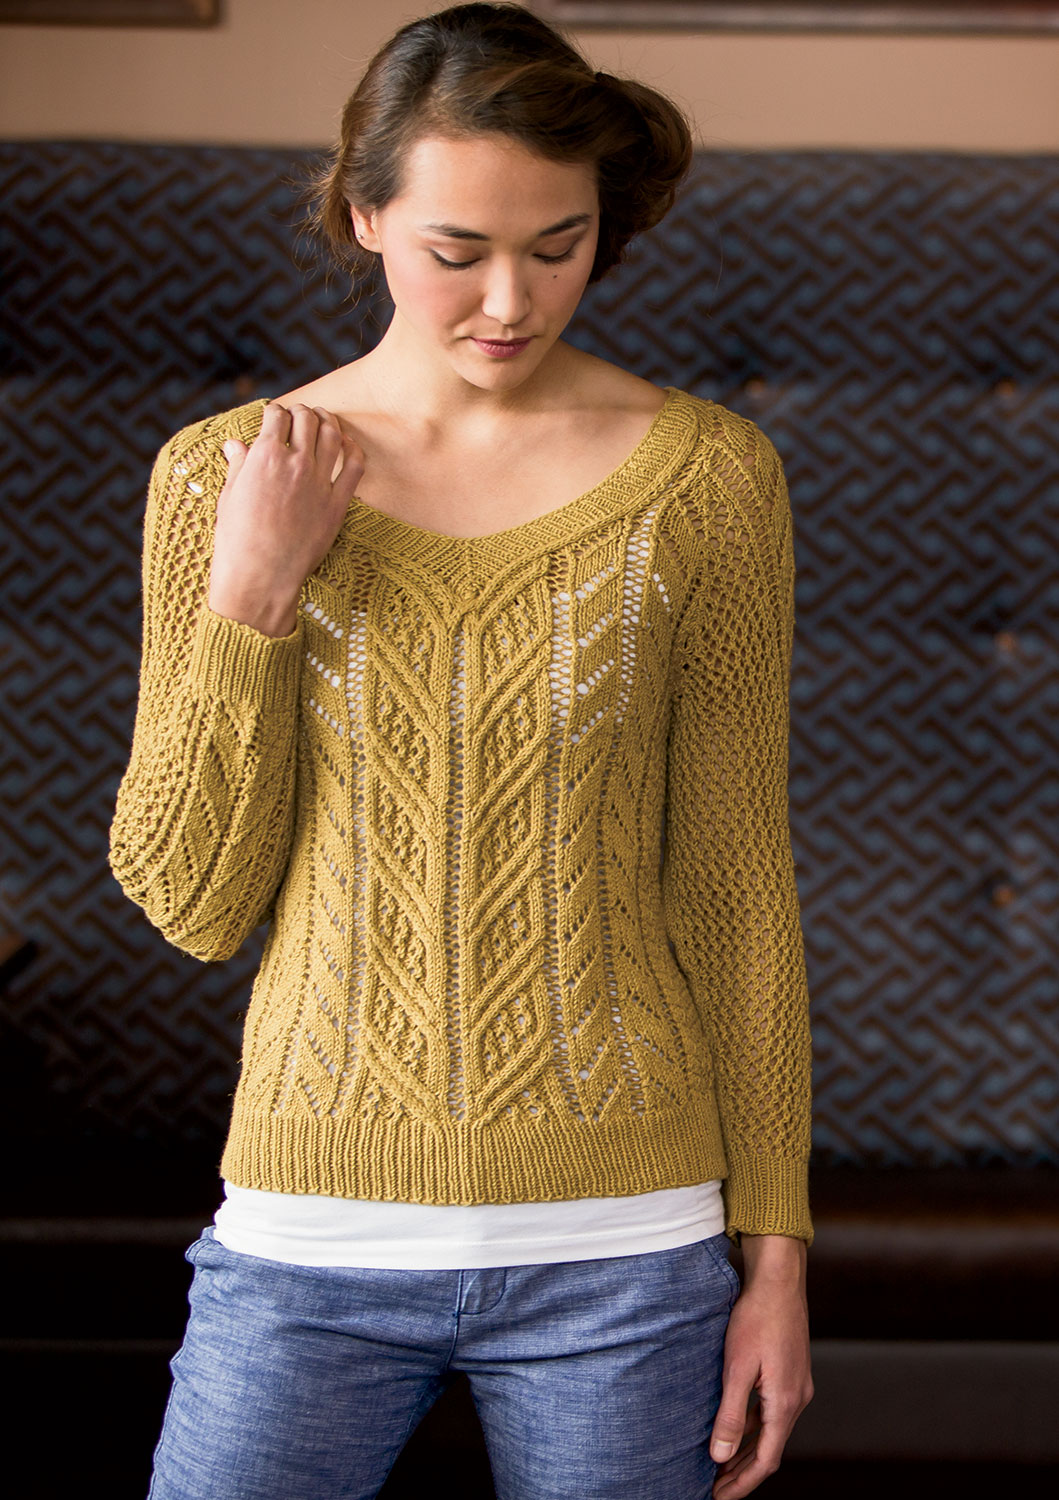 Knitting Summer Sweater : Optical illusions and summer knitting interweave